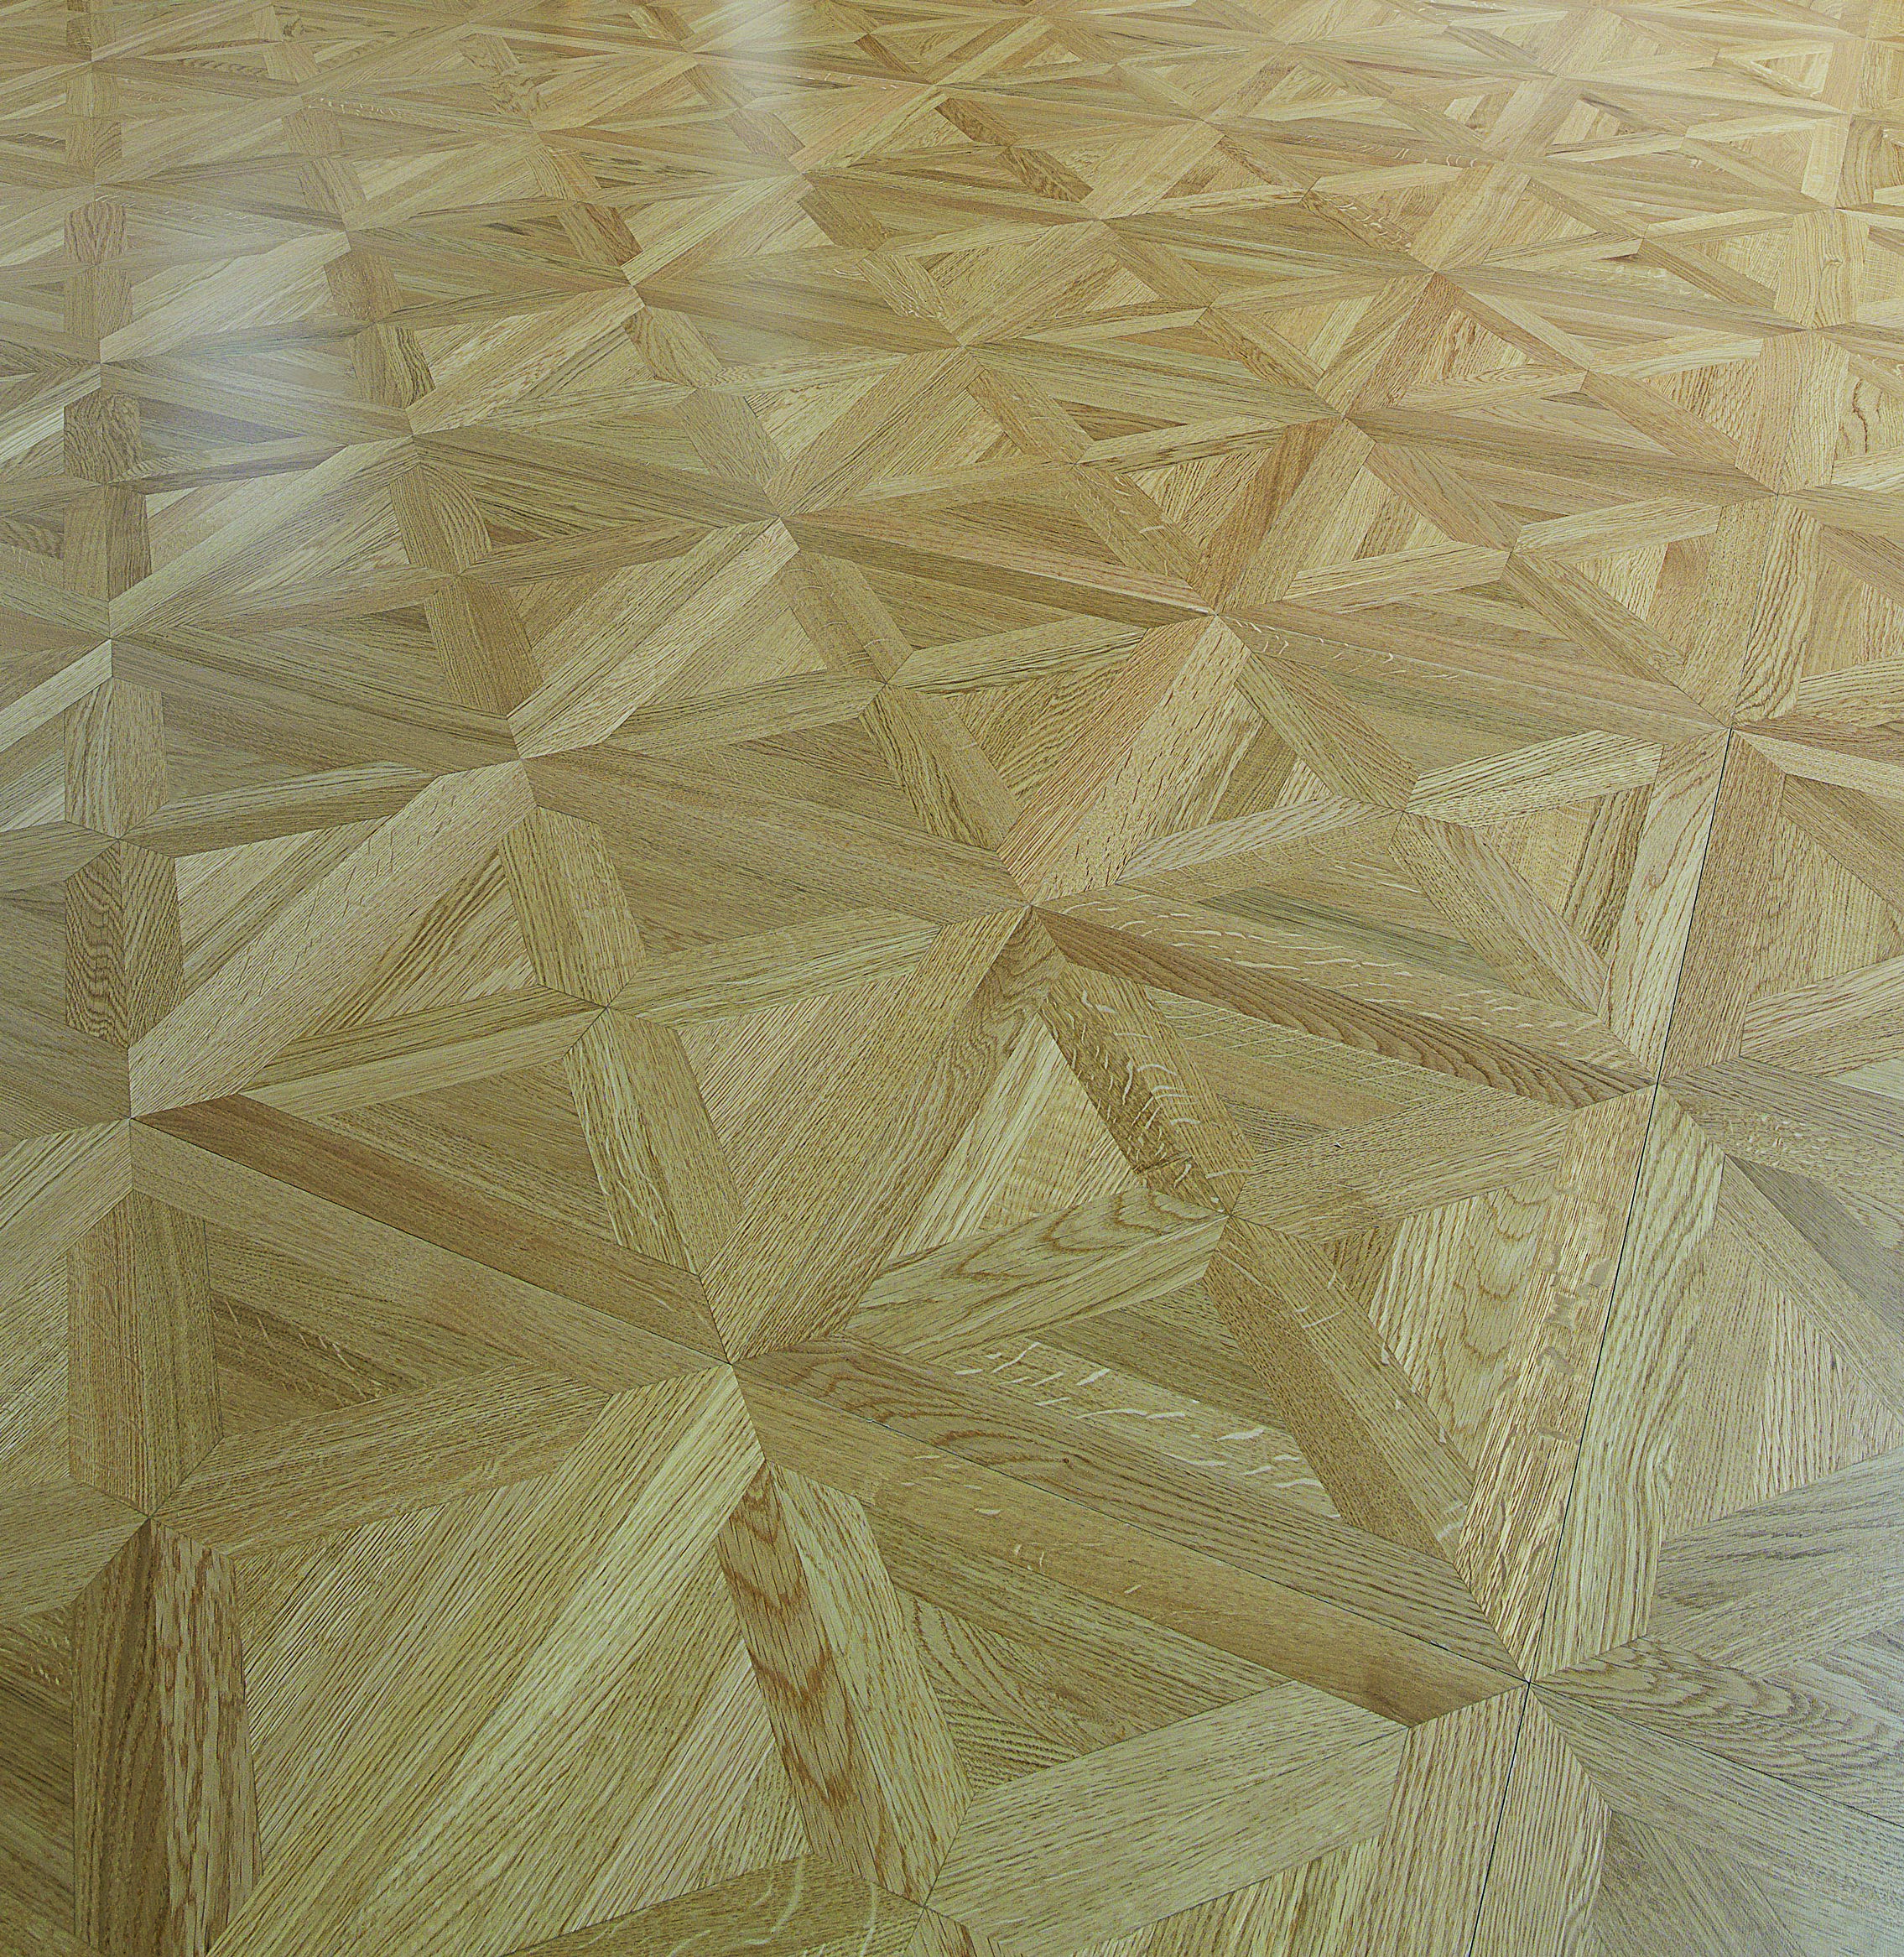 Superb img of French Oak Parquet Panels Fitting Guide Wood4Floors with #856C46 color and 2270x2333 pixels